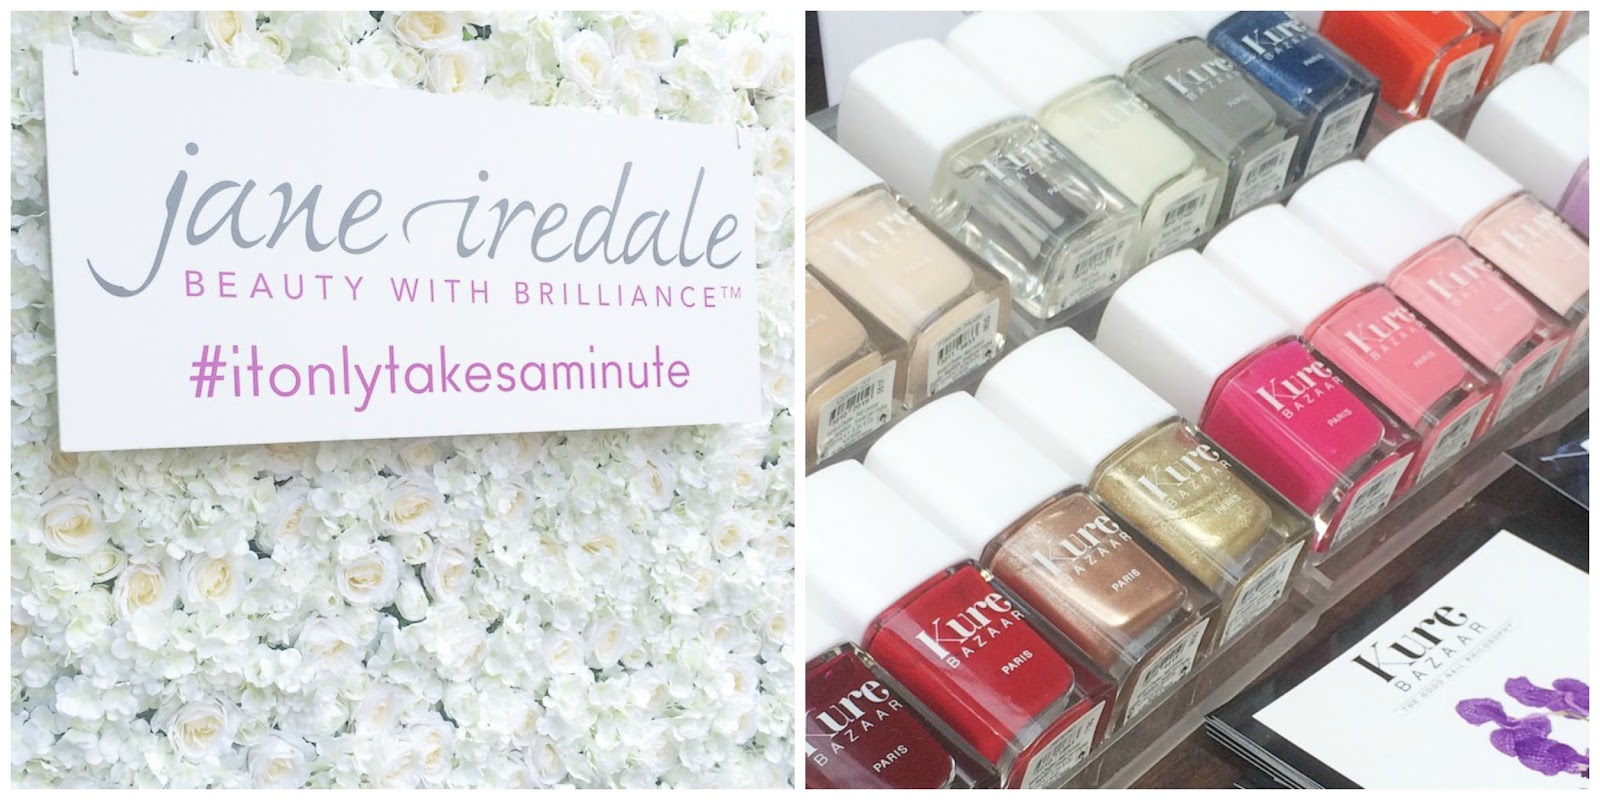 Nails, Kure Baazar, manicure, Jane Iredale, makeup